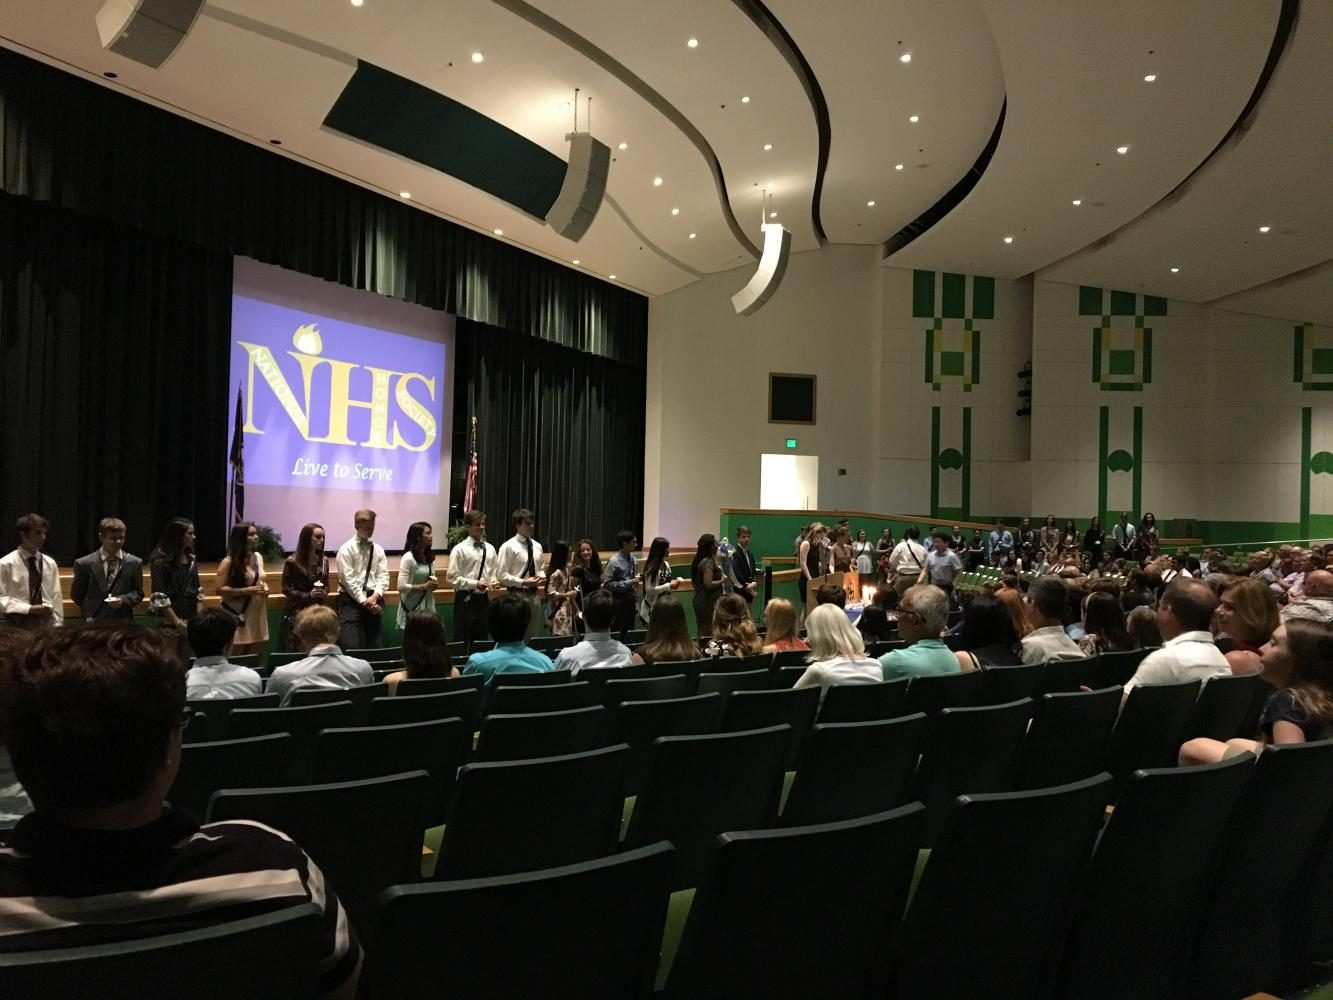 New+NHS+inductees%2C+parents%2C+and+teachers+gathered+in+the+auditorium+on+the+night+of+April+27+for+the+induction+ceremony.+